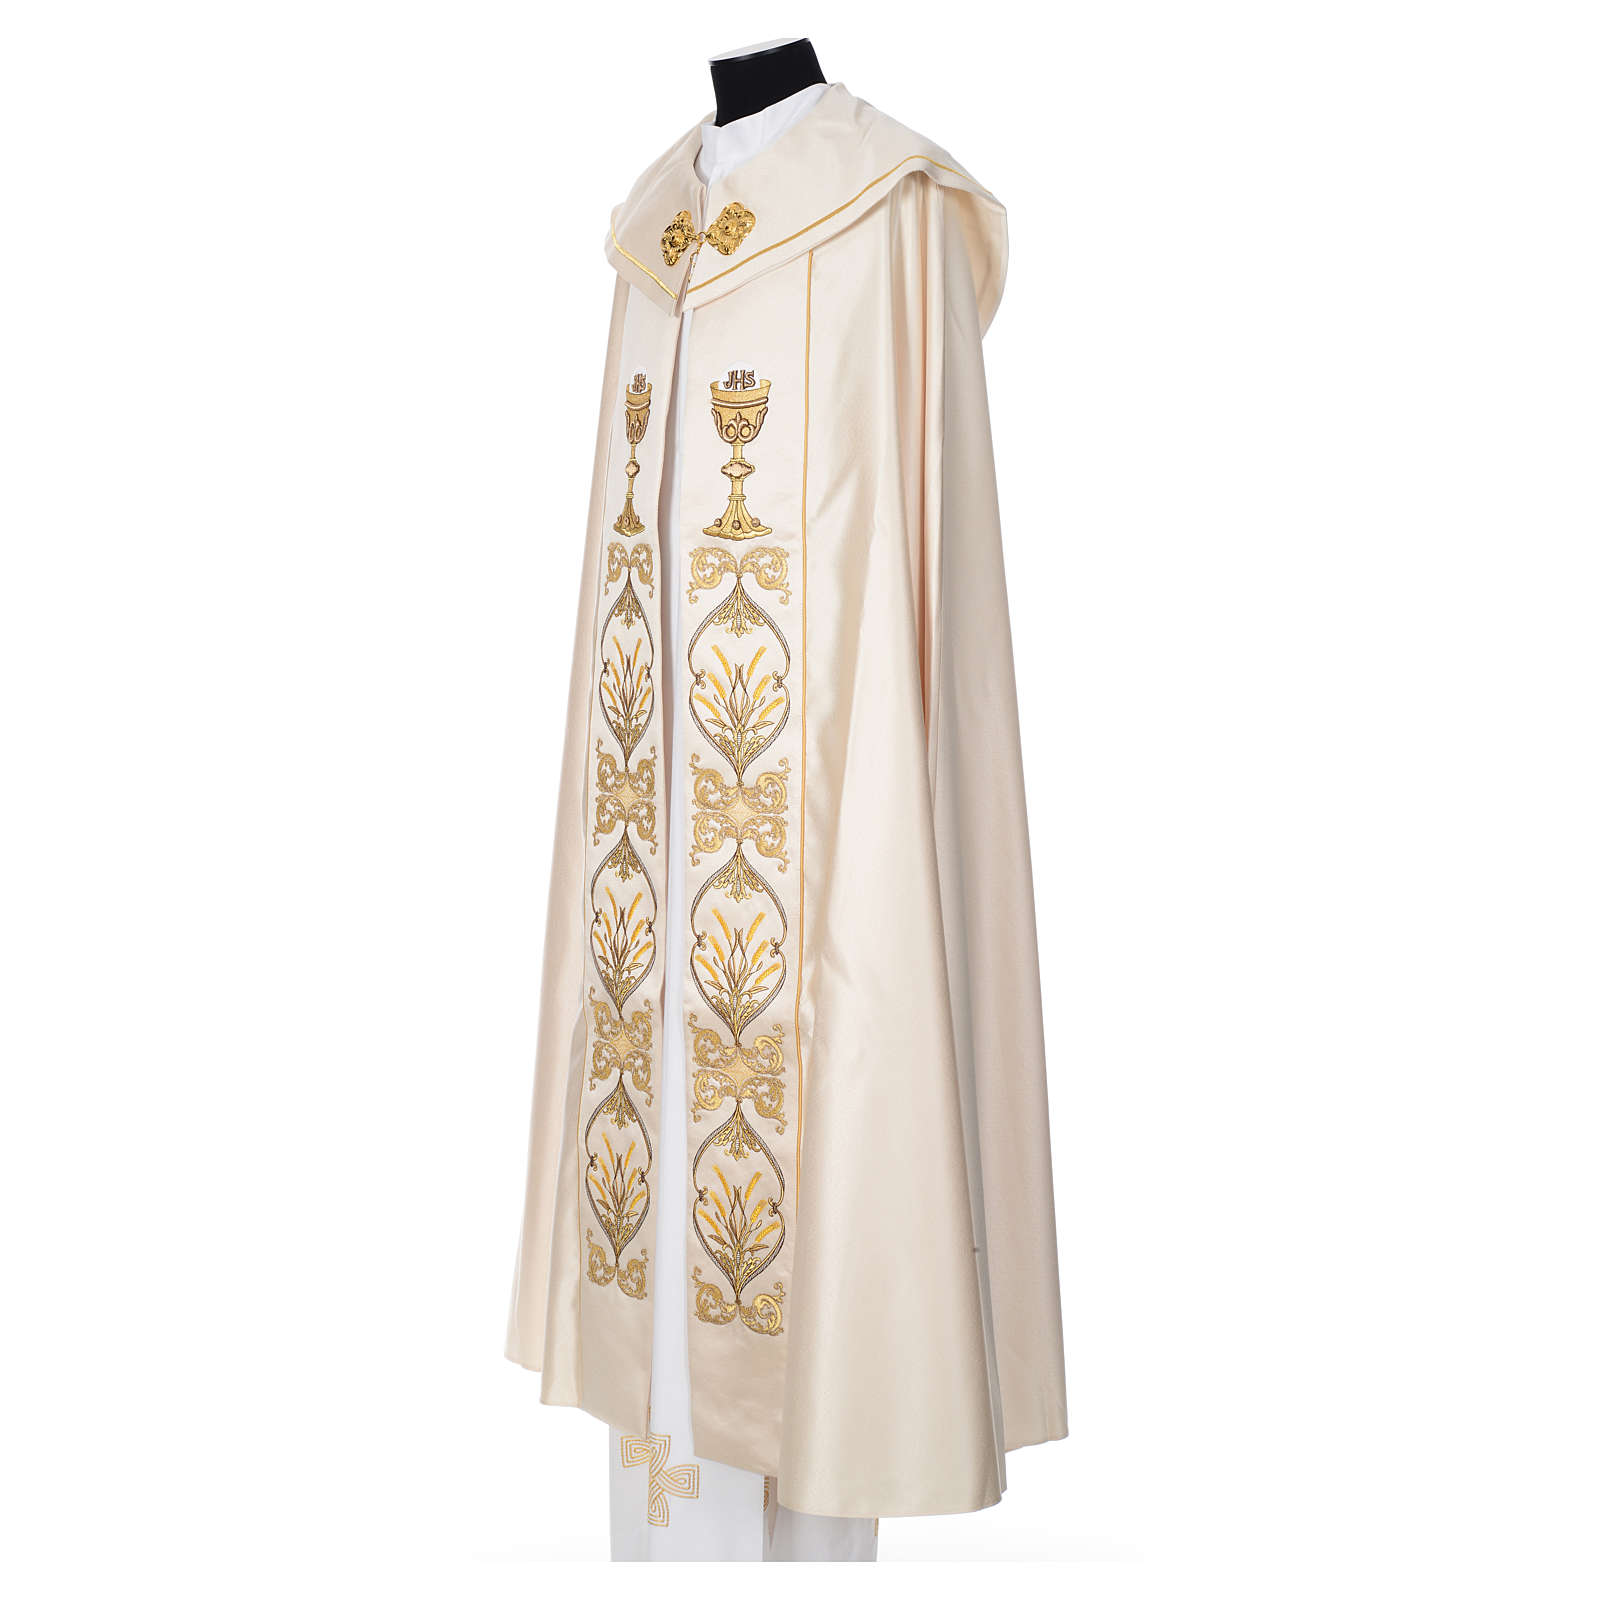 Cope in 100% polyester with chalice in relief 4